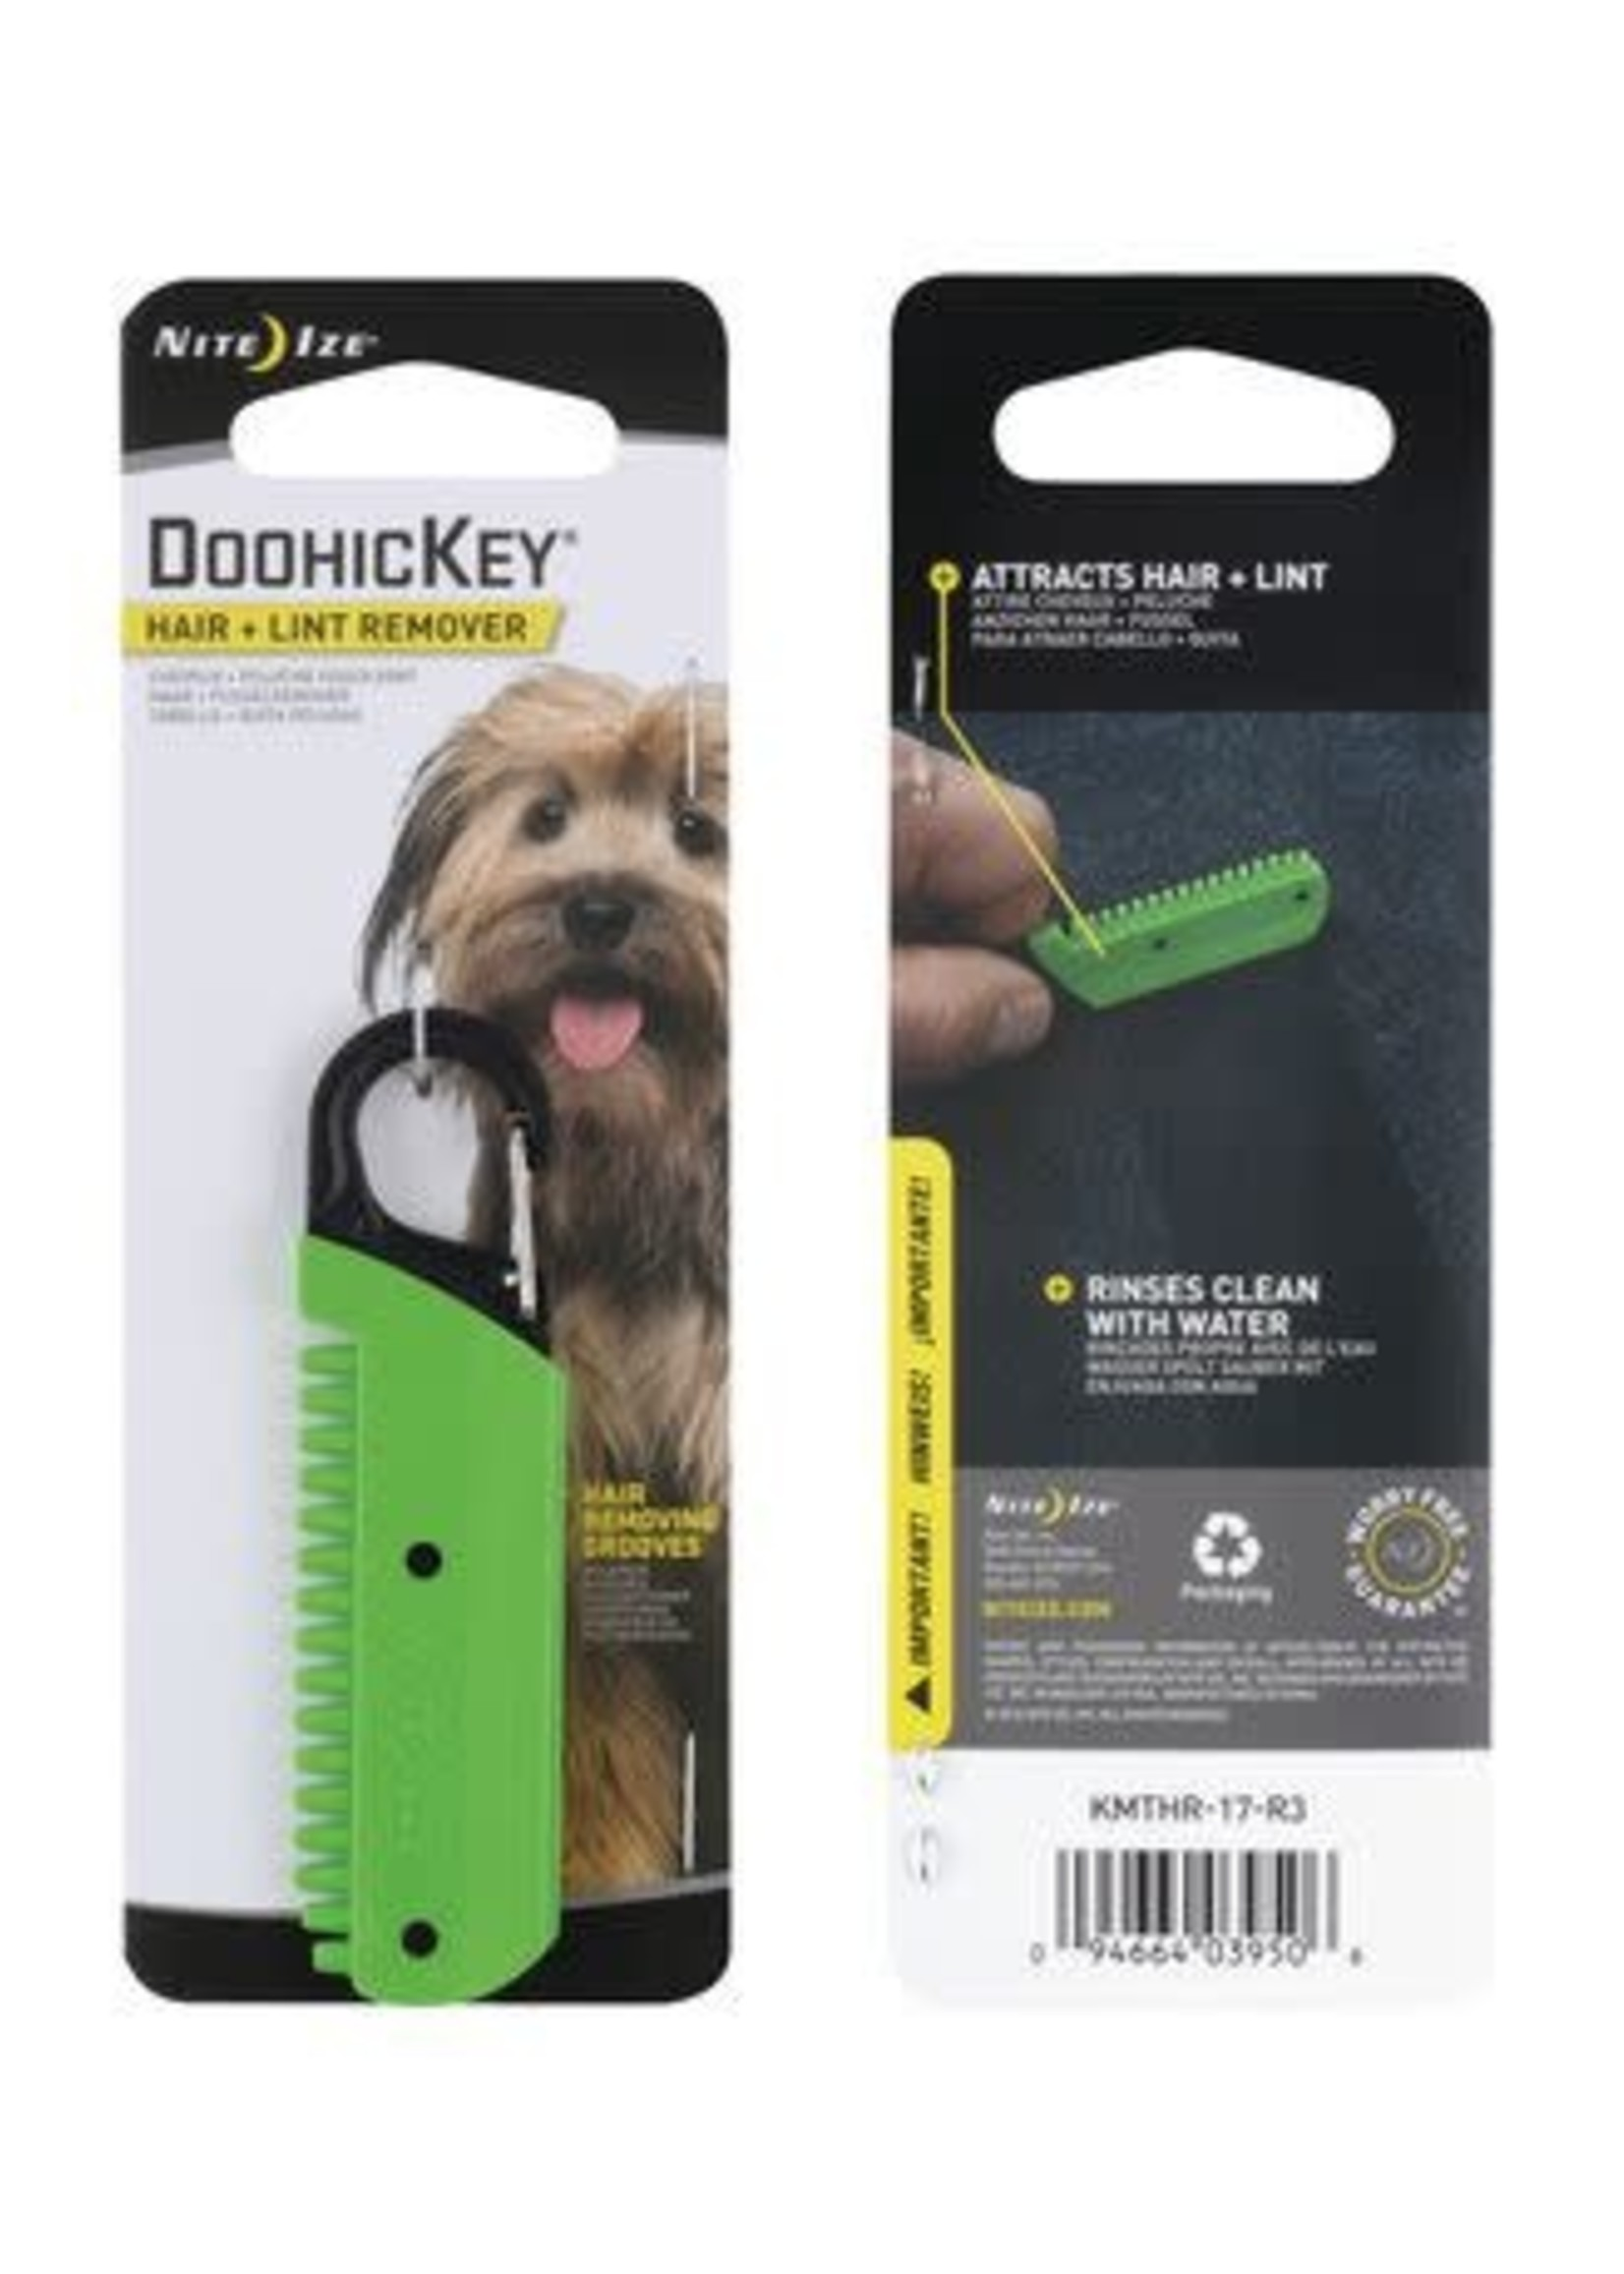 Nite Ize Doohickey Hair & Lint Remover